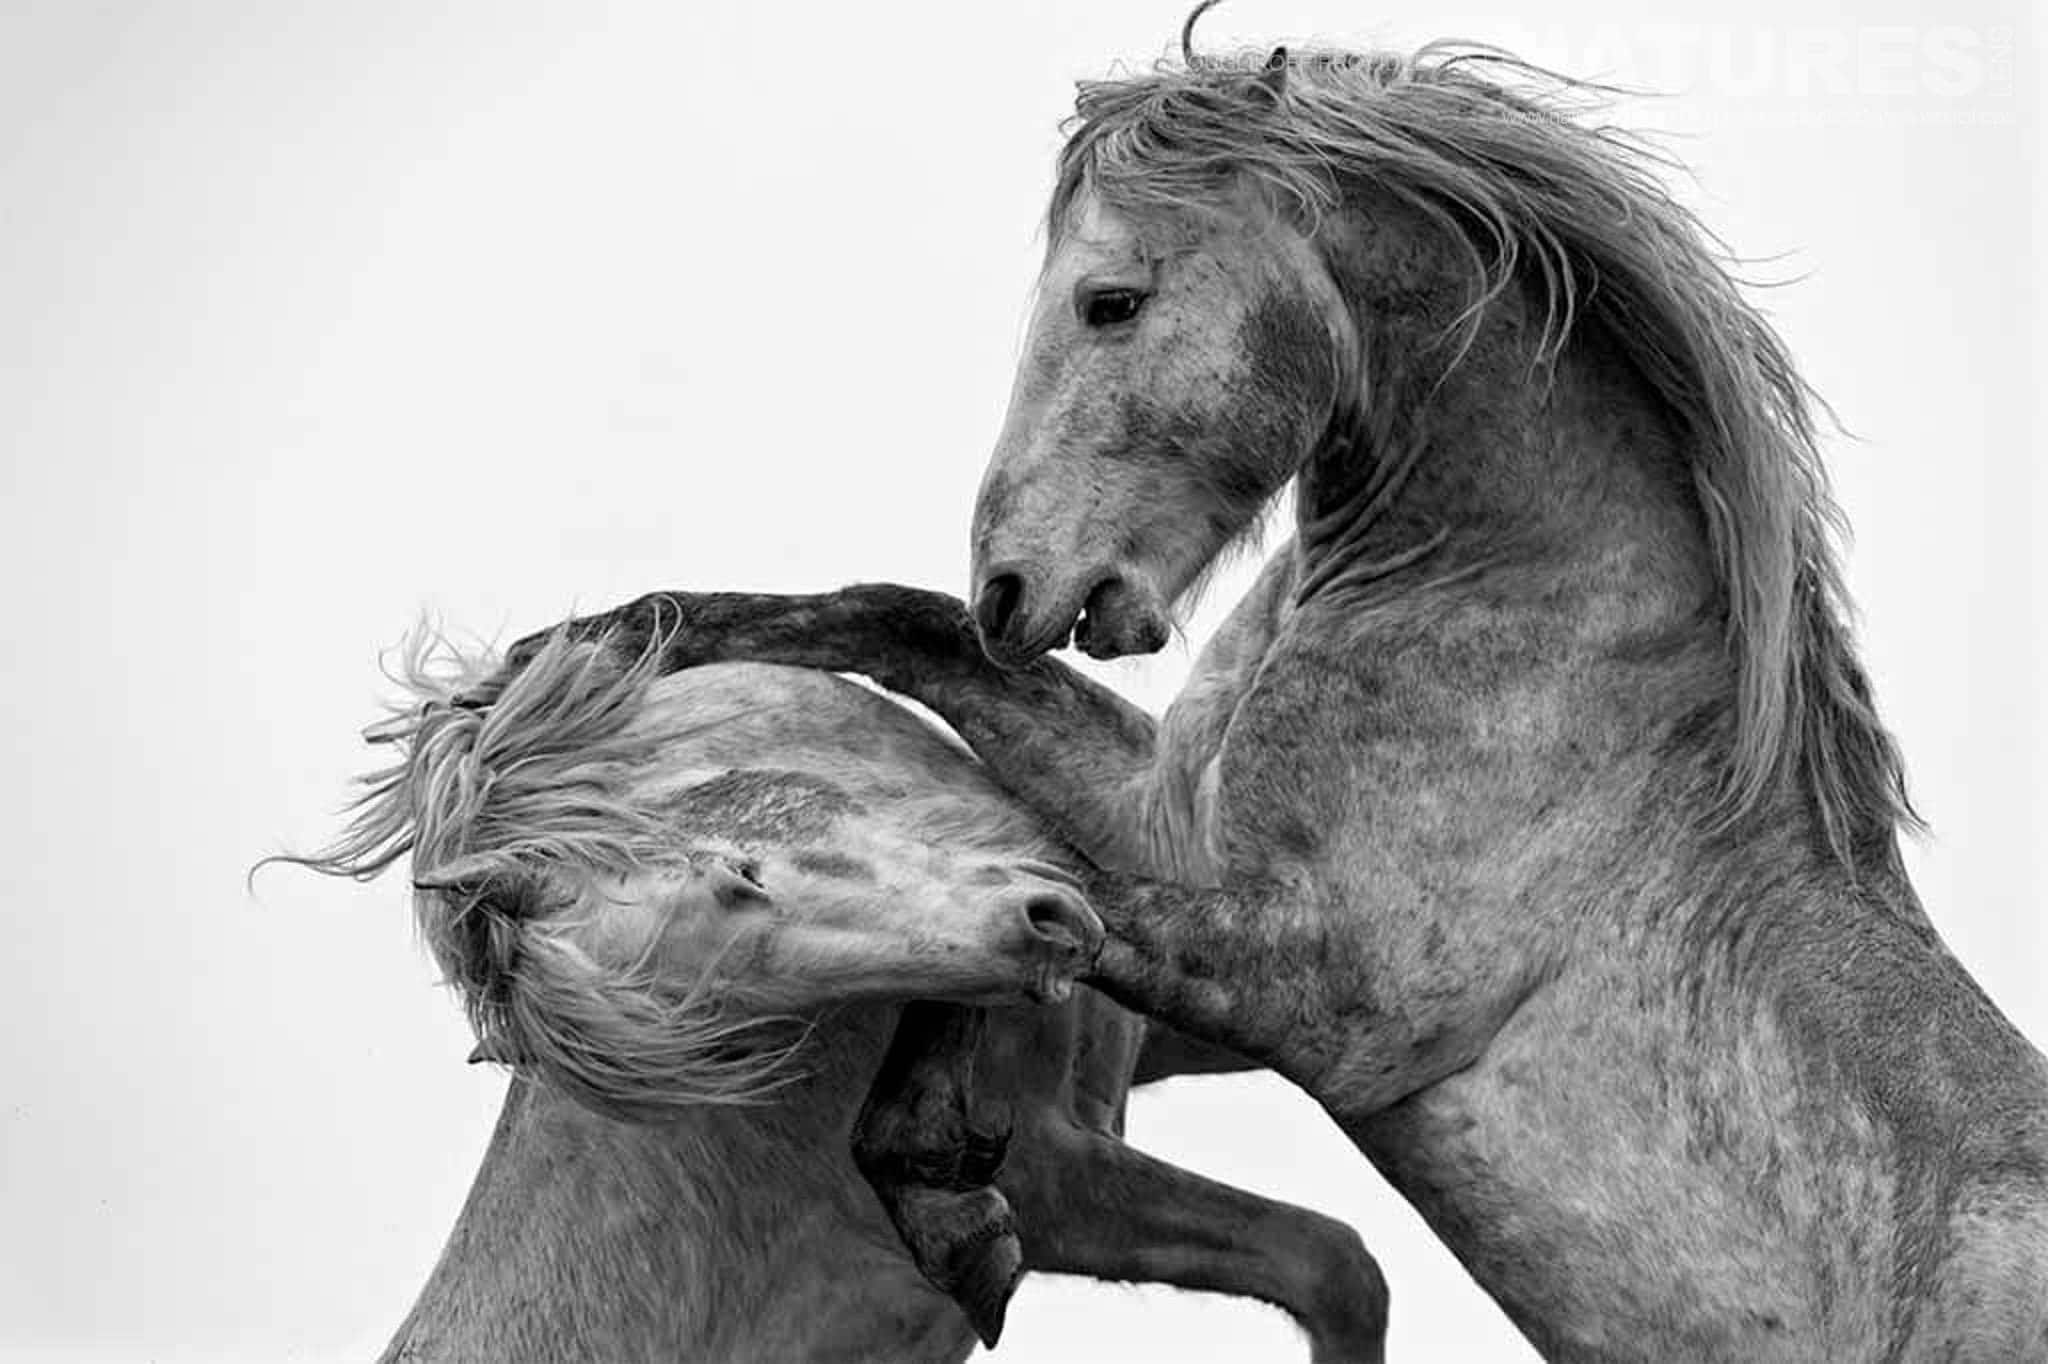 Portrait of fighting stallions typical of the type of image that may be captured during the NaturesLens Wild White Horses of the Camargue Photography Holiday